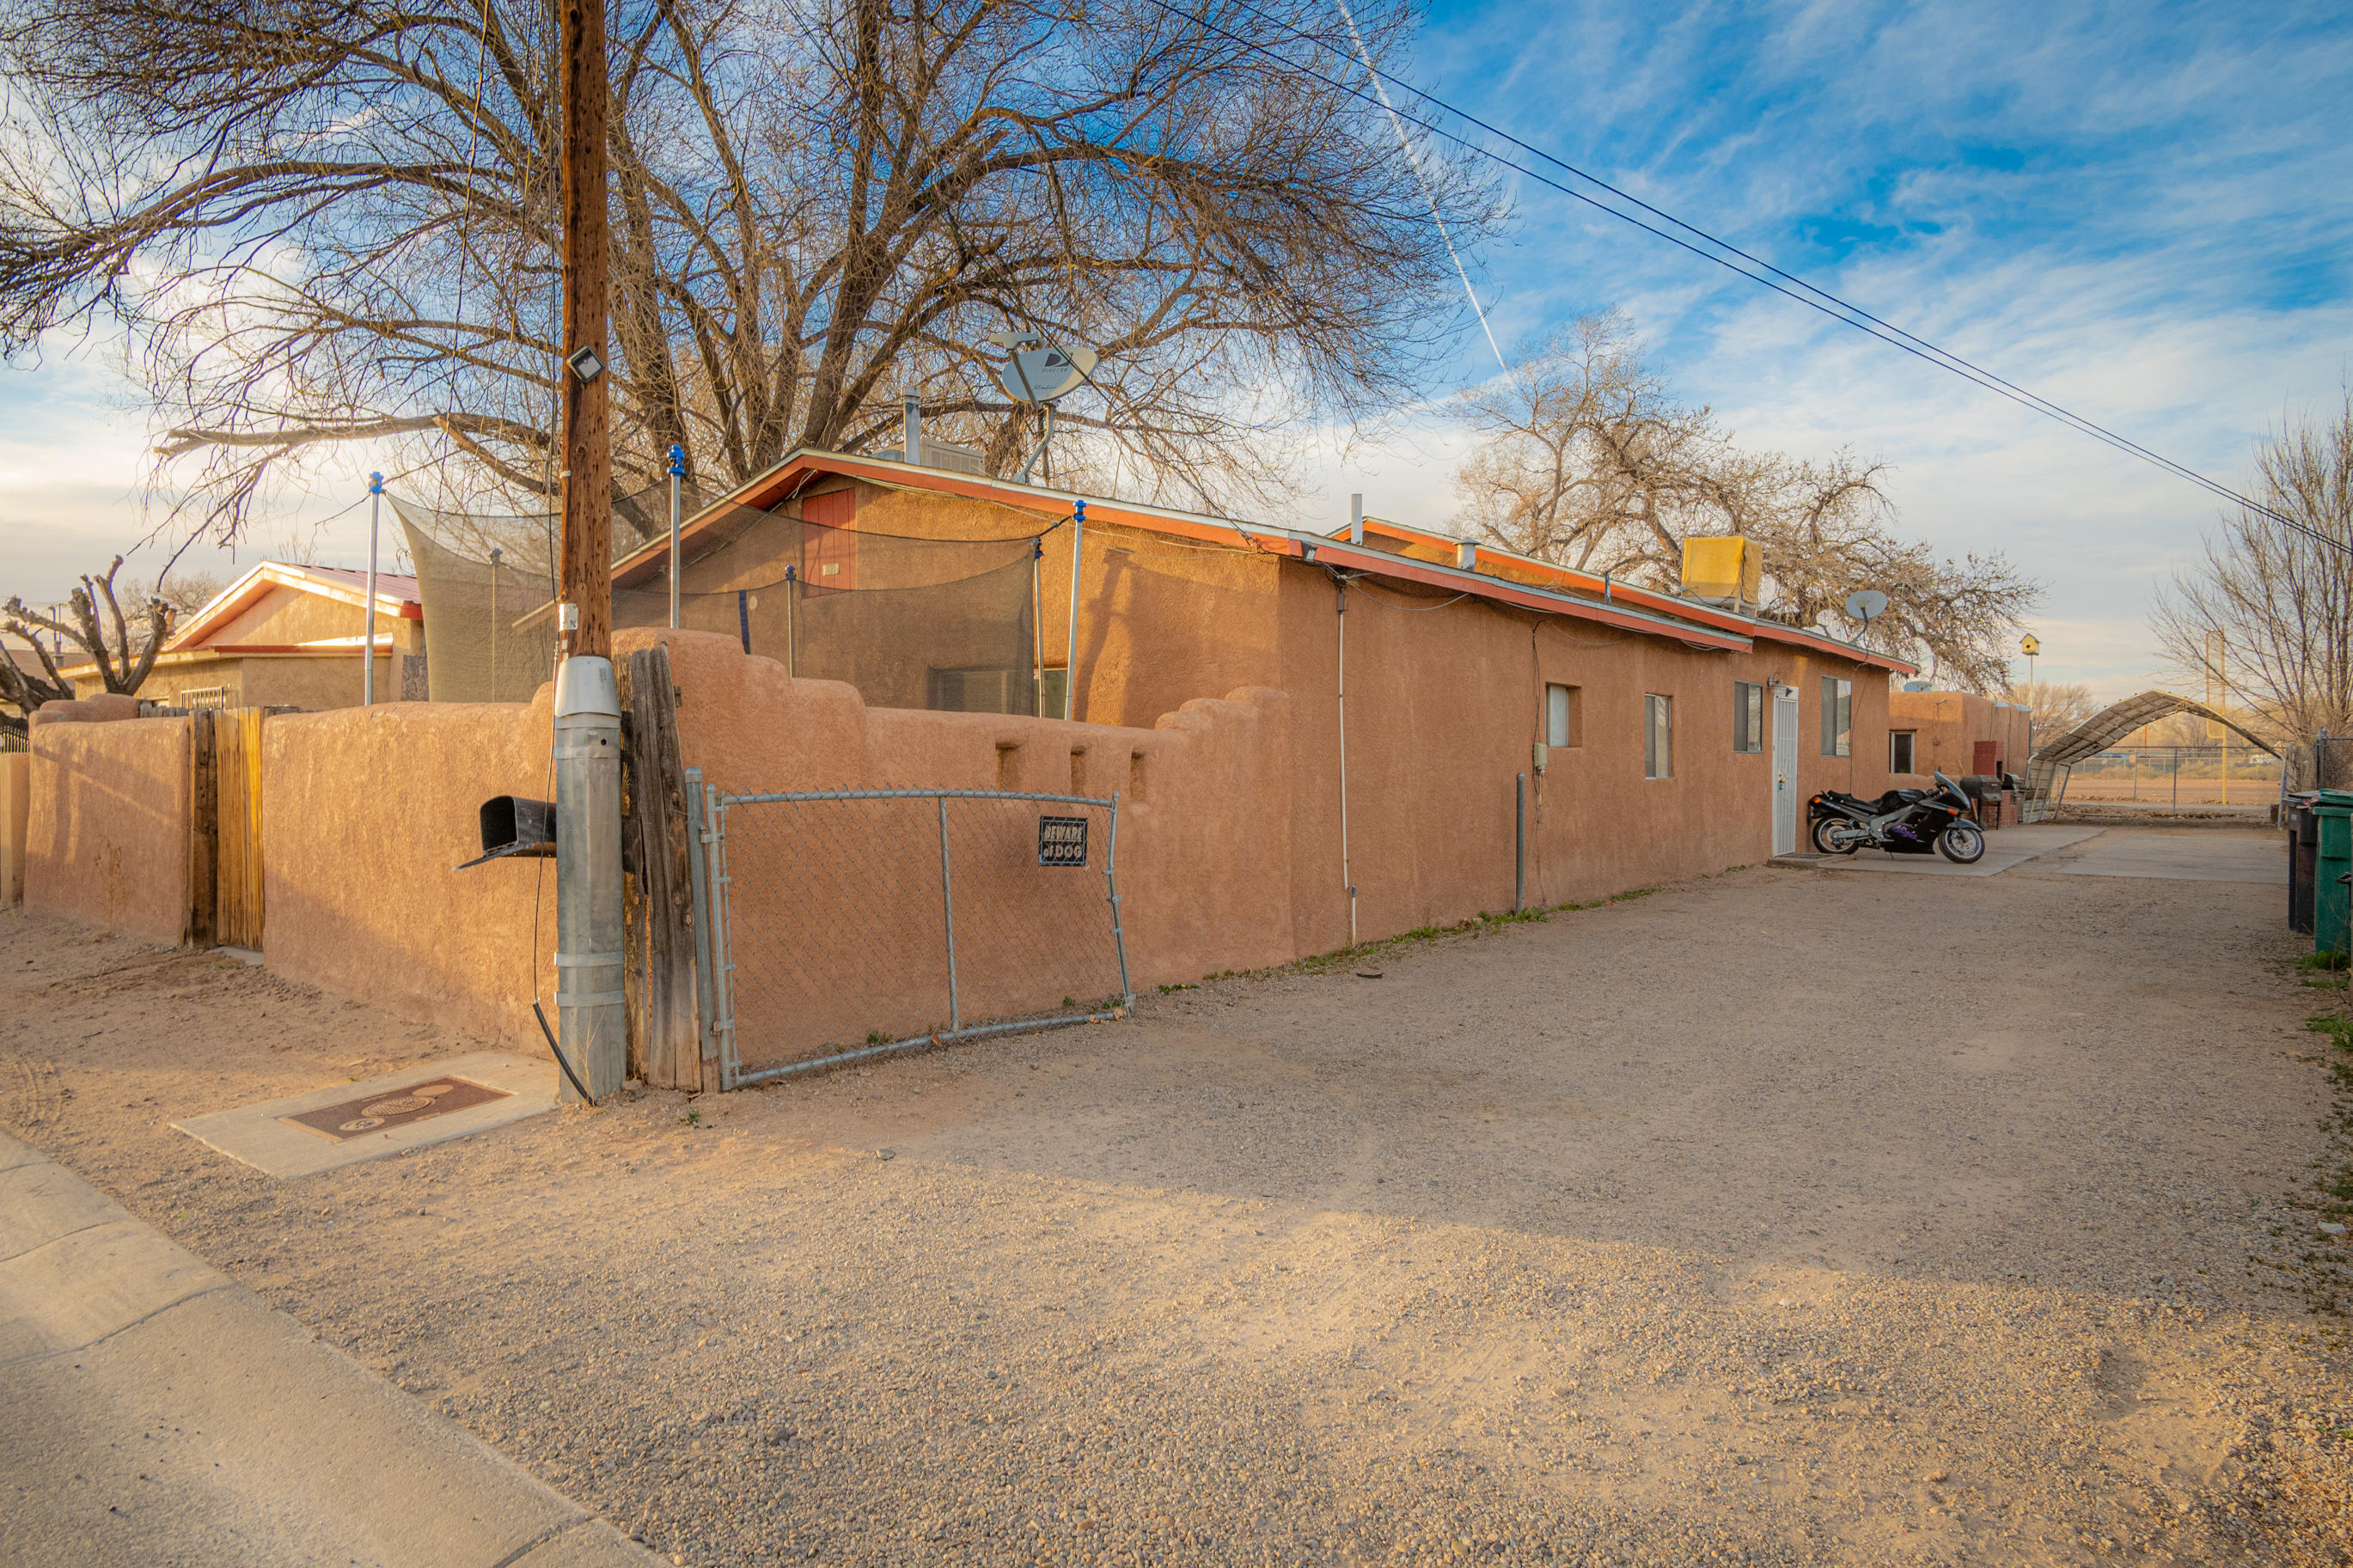 South Valley property with 2 Houses!  Income generating property! The main and guest house is rented. It's on 2 separate meters. Please do not disturb tenants. We will arrange a showing with a written offer.